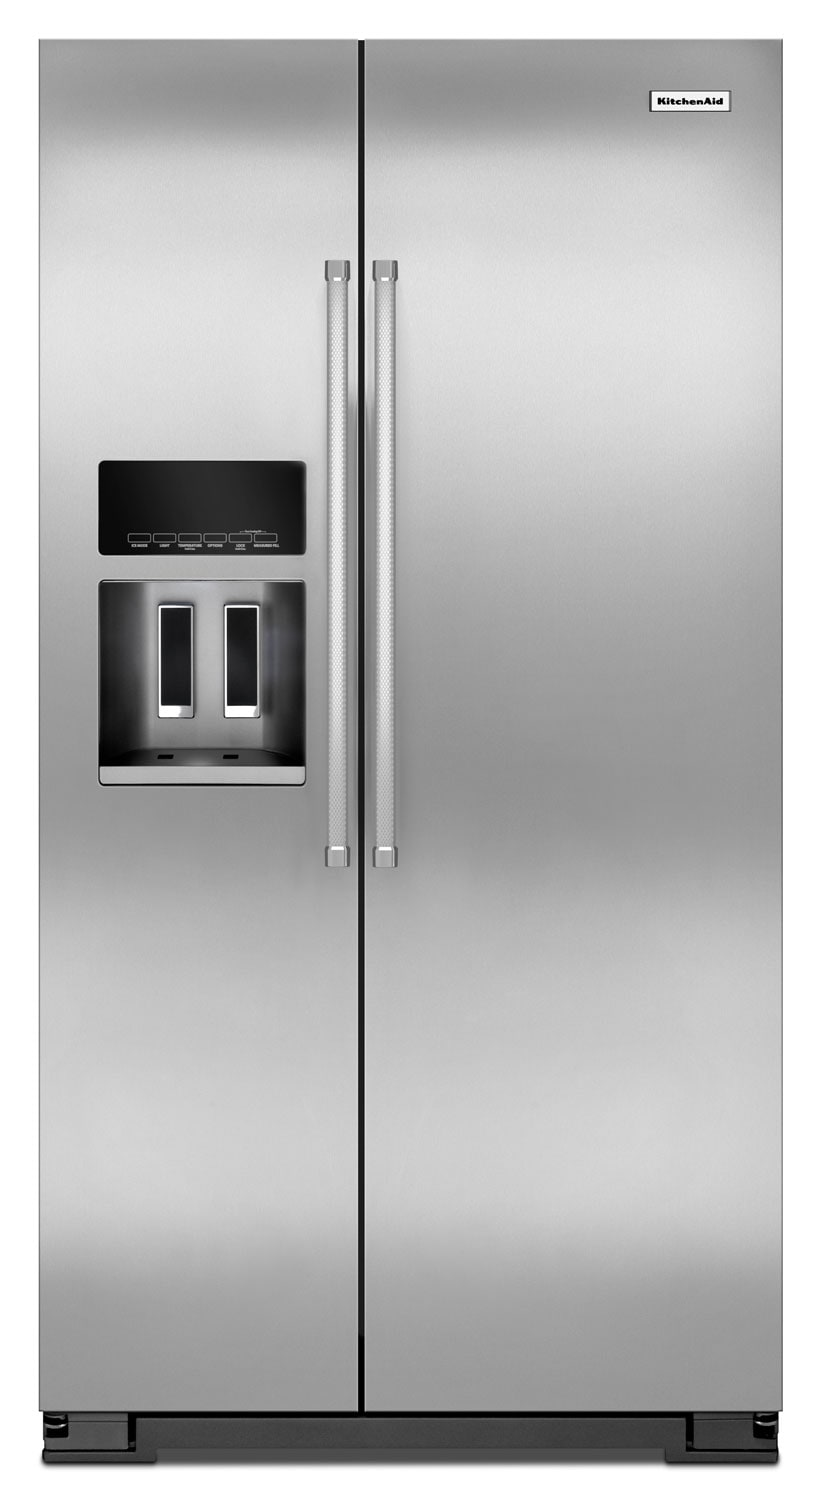 Refrigerators and Freezers - KitchenAid Stainless Steel Counter-Depth Side-by-Side Refrigerator (19.9 Cu. Ft.) - KRSC500ESS